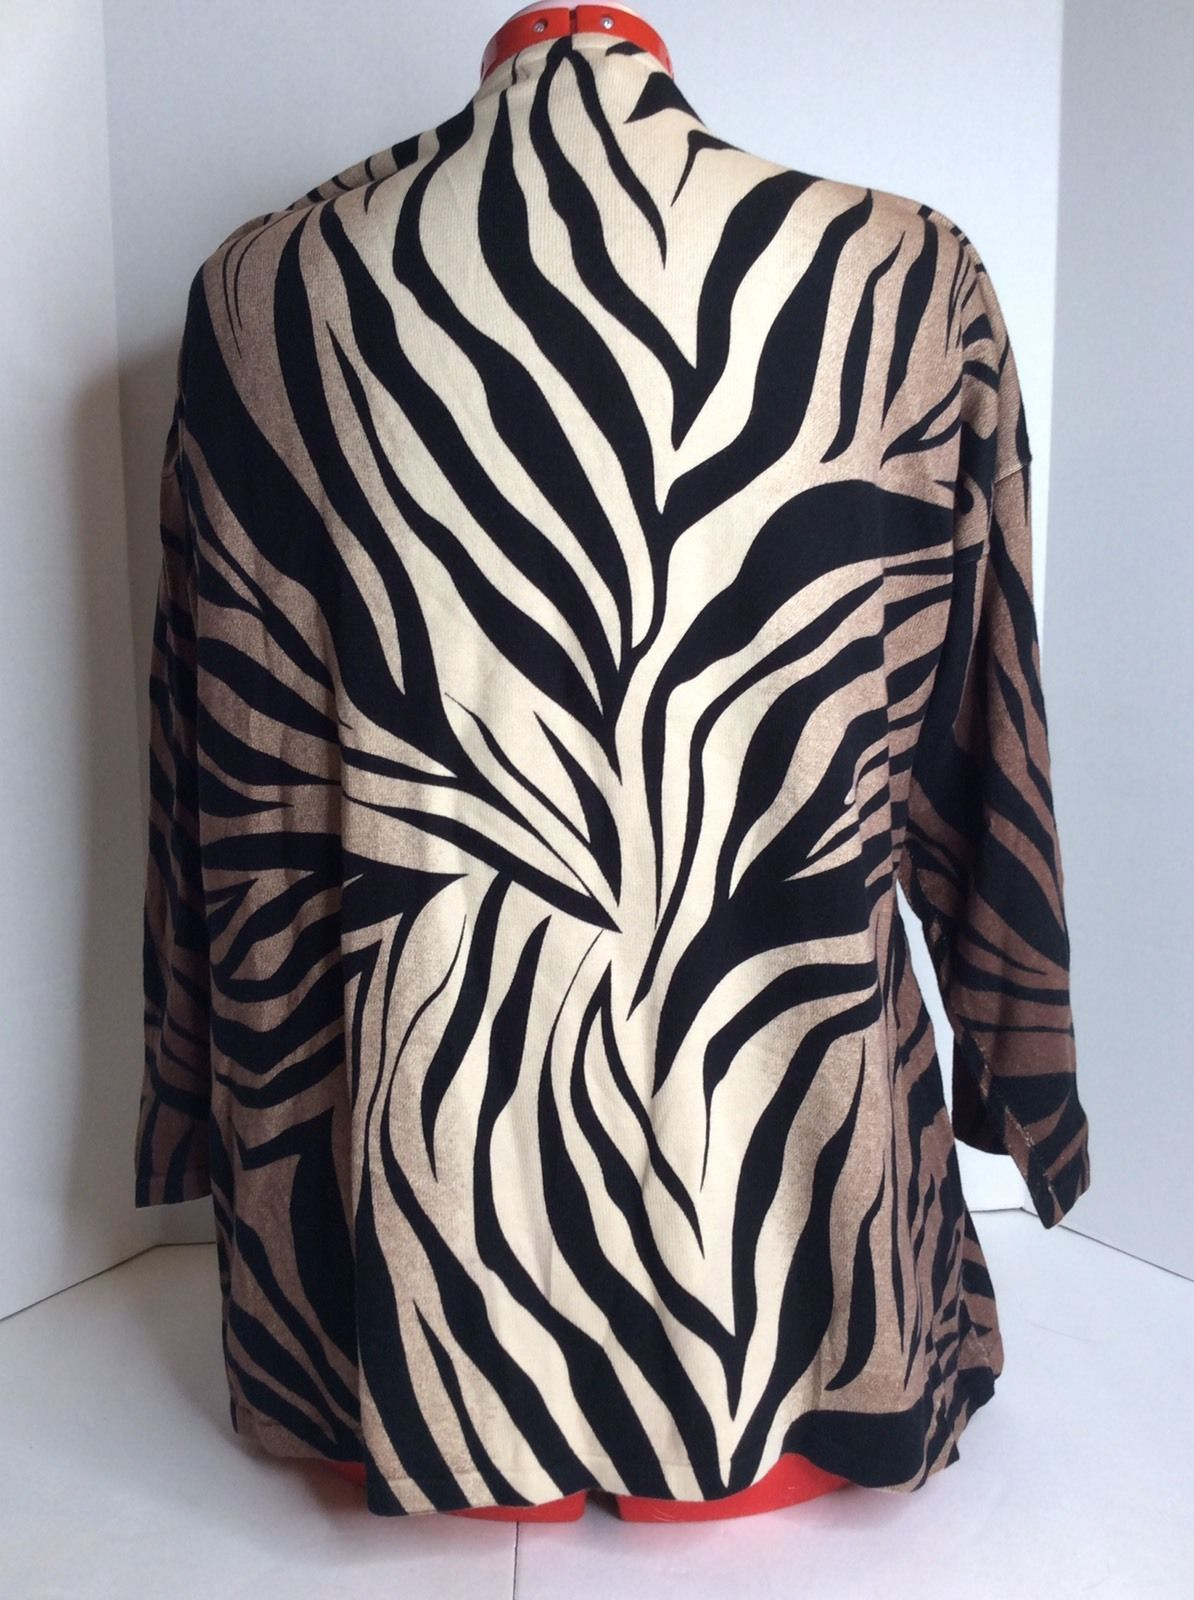 JM Collection Black Beige Animal Zebra Print Long Sleeve Top Blouse Shirt Sz XL